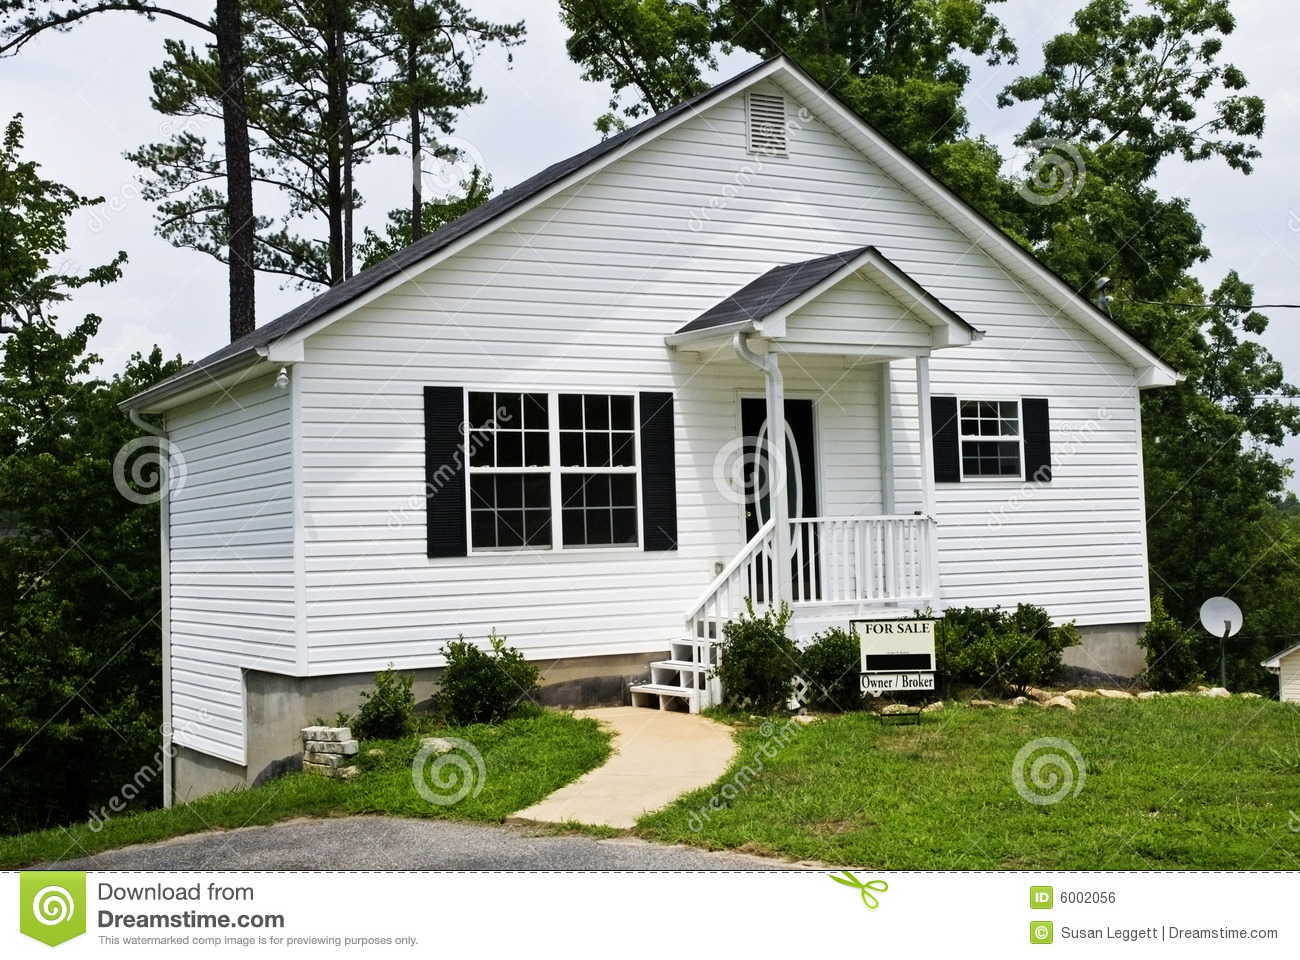 Admirable Small White House For Sale Stock Photo Image Of Foreclosure Download Free Architecture Designs Rallybritishbridgeorg